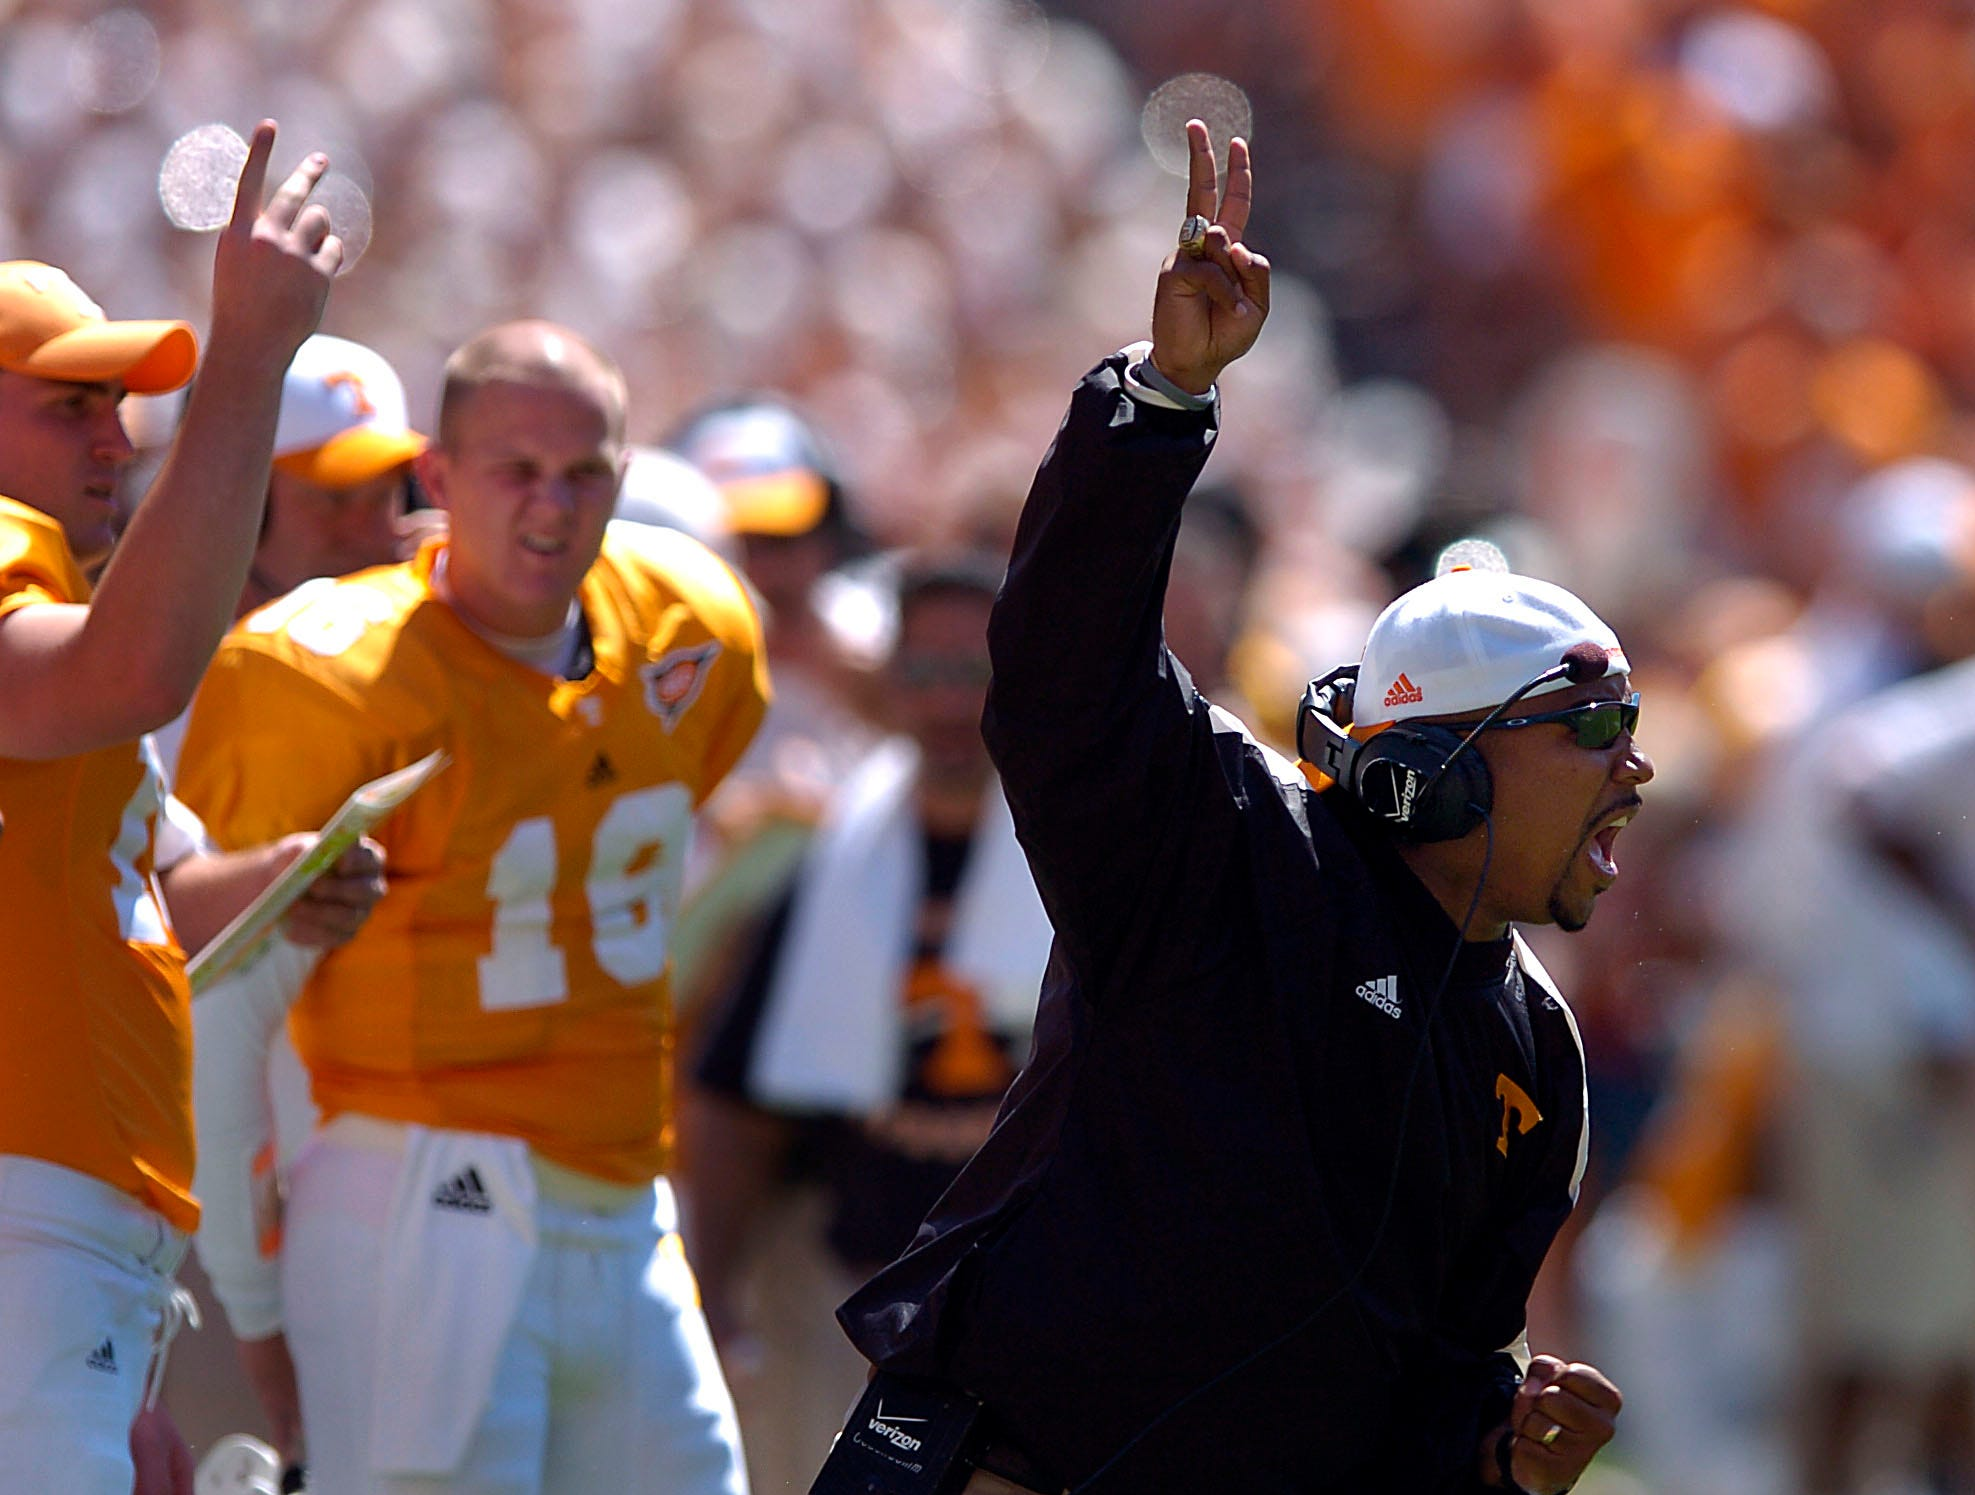 0903utuab5.MP#4246 -- SPORTS -- MICHAEL PATRICK/NEWS SENTINEL STAFF    Tennessee  running backs coach Trooper Taylor yells to his players during first half action in Neyland Stadium Saturday.  UT won the game 17-10.  9/3/2005